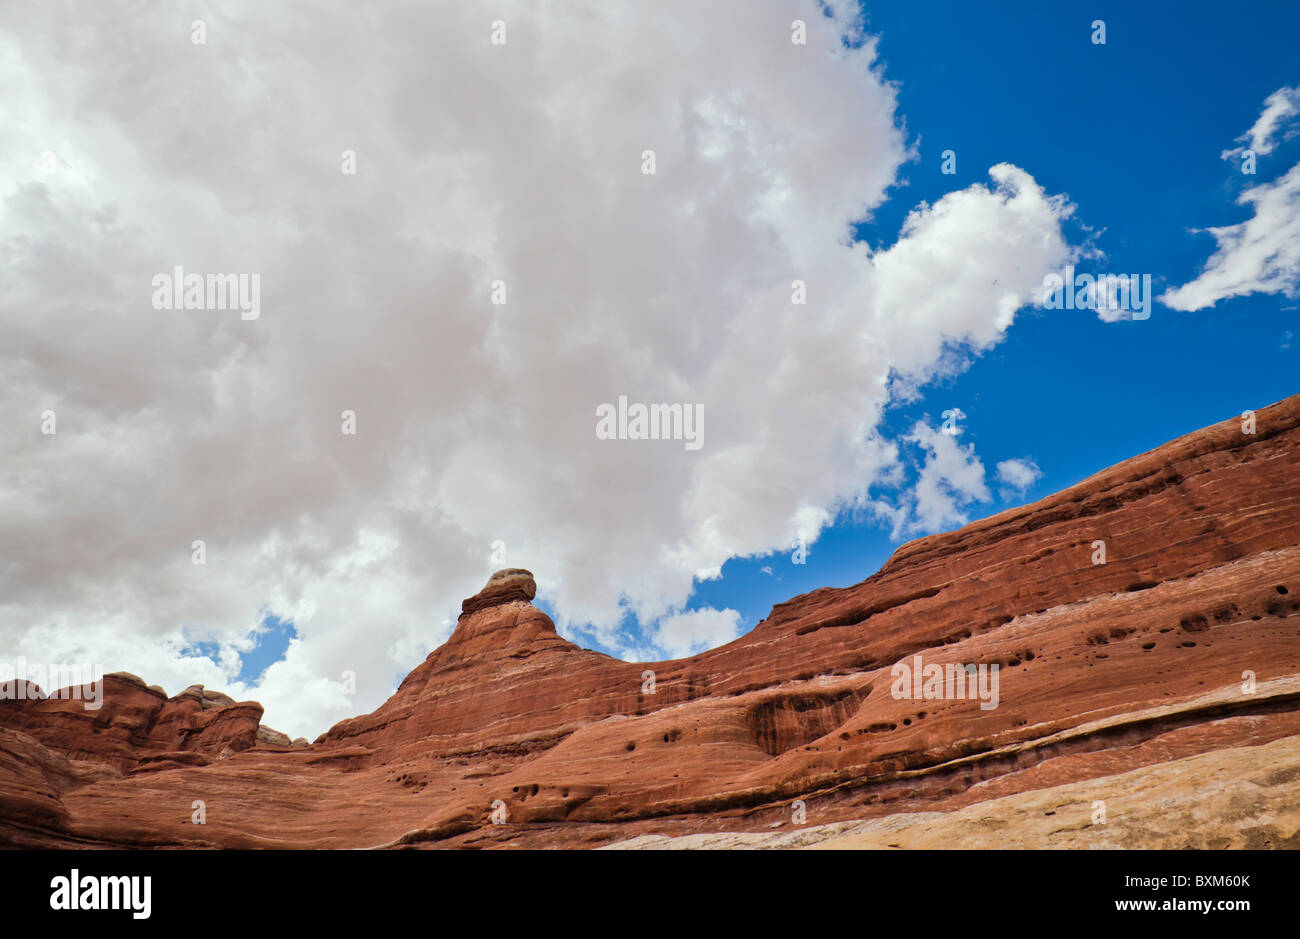 A sandstone rock fine and sky, Canyonlands National Park, Utah, USA. - Stock Image